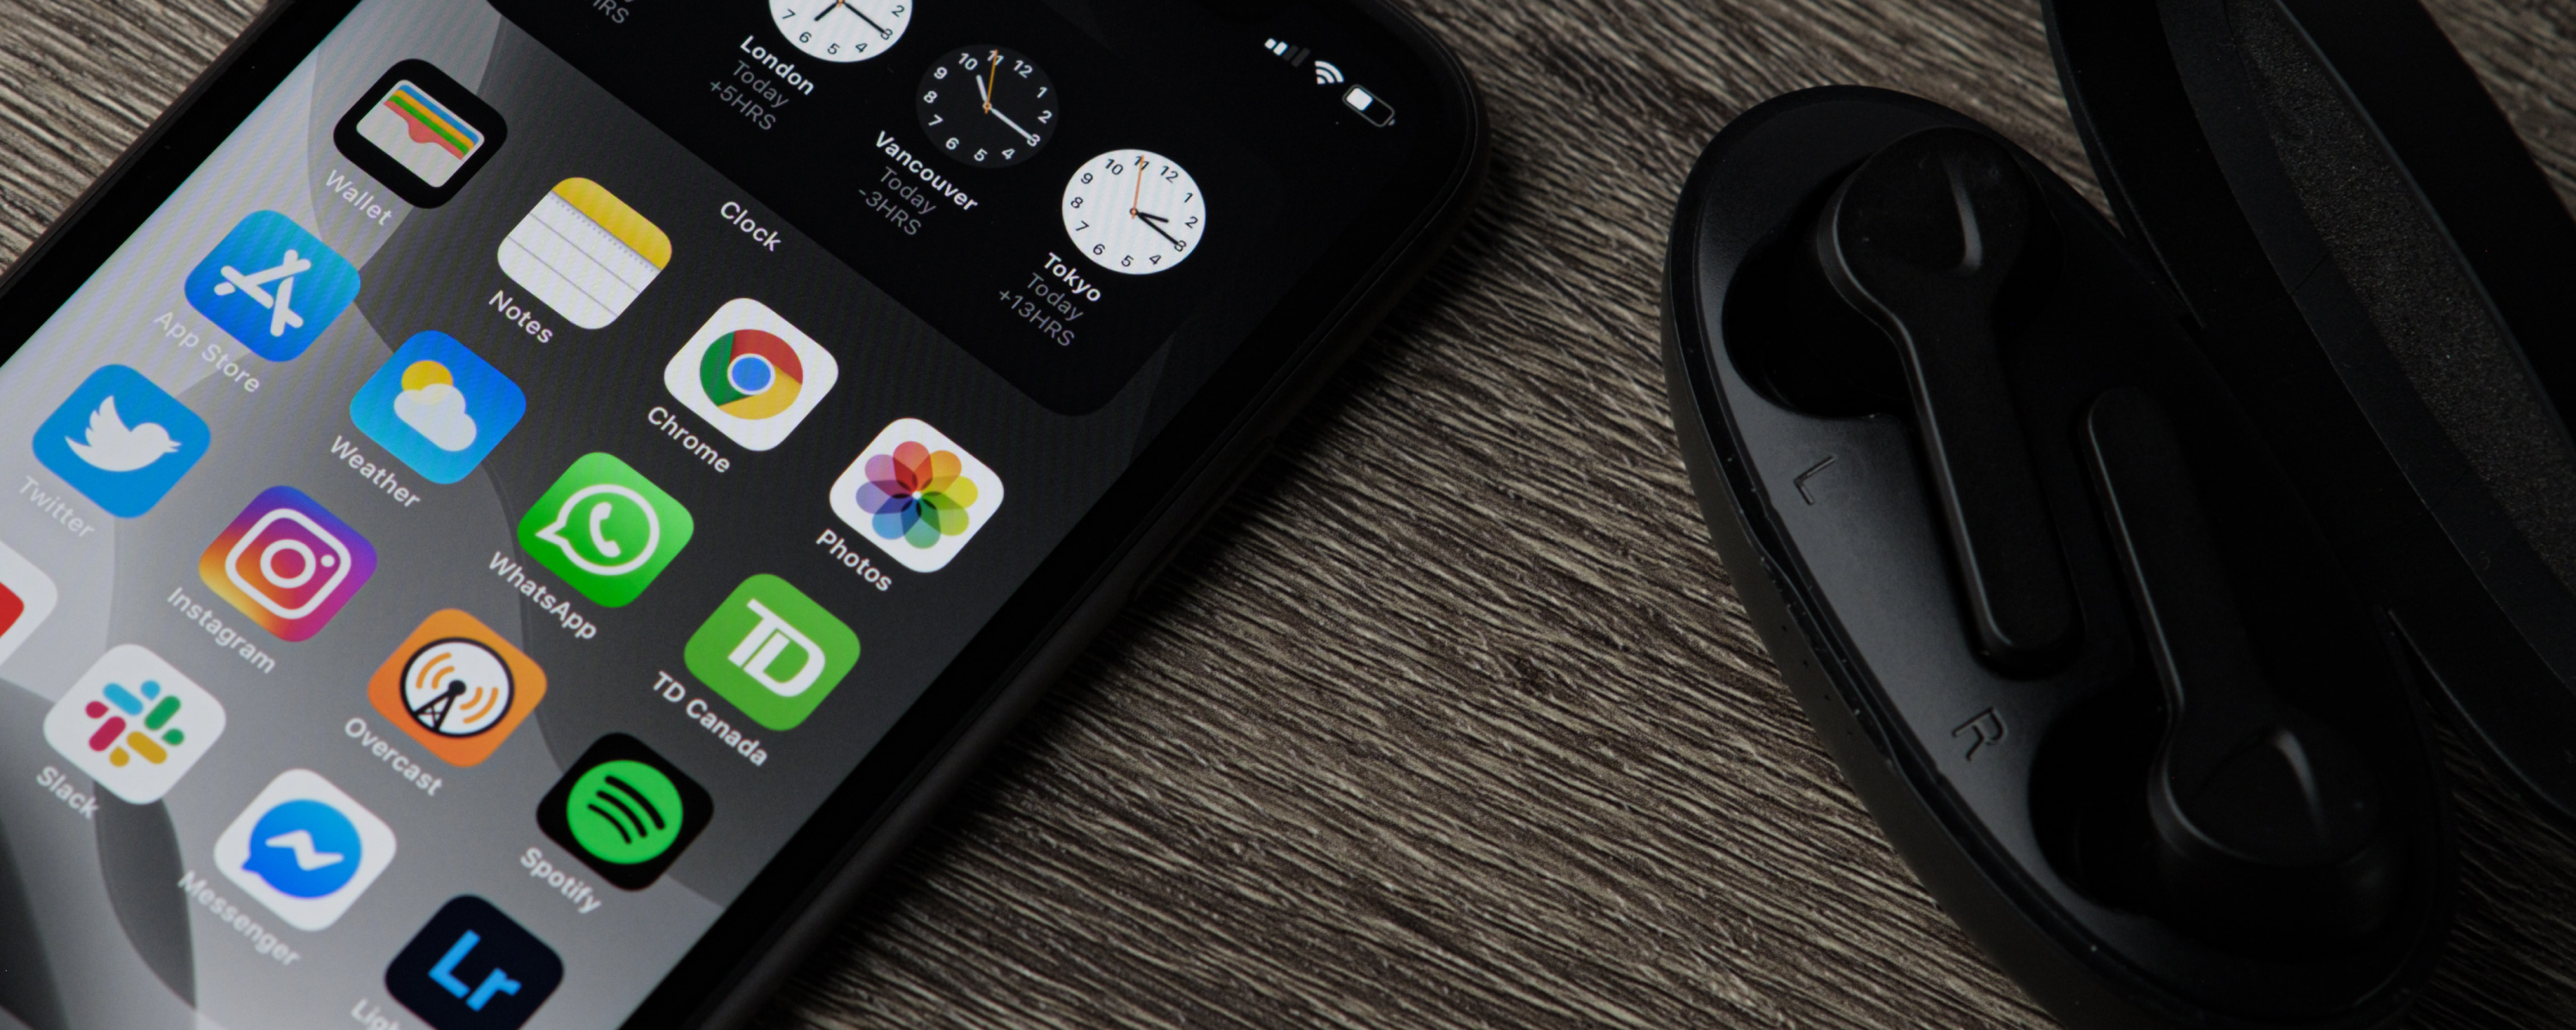 10 Best Apps for Your iPhone: The 2021 Edition